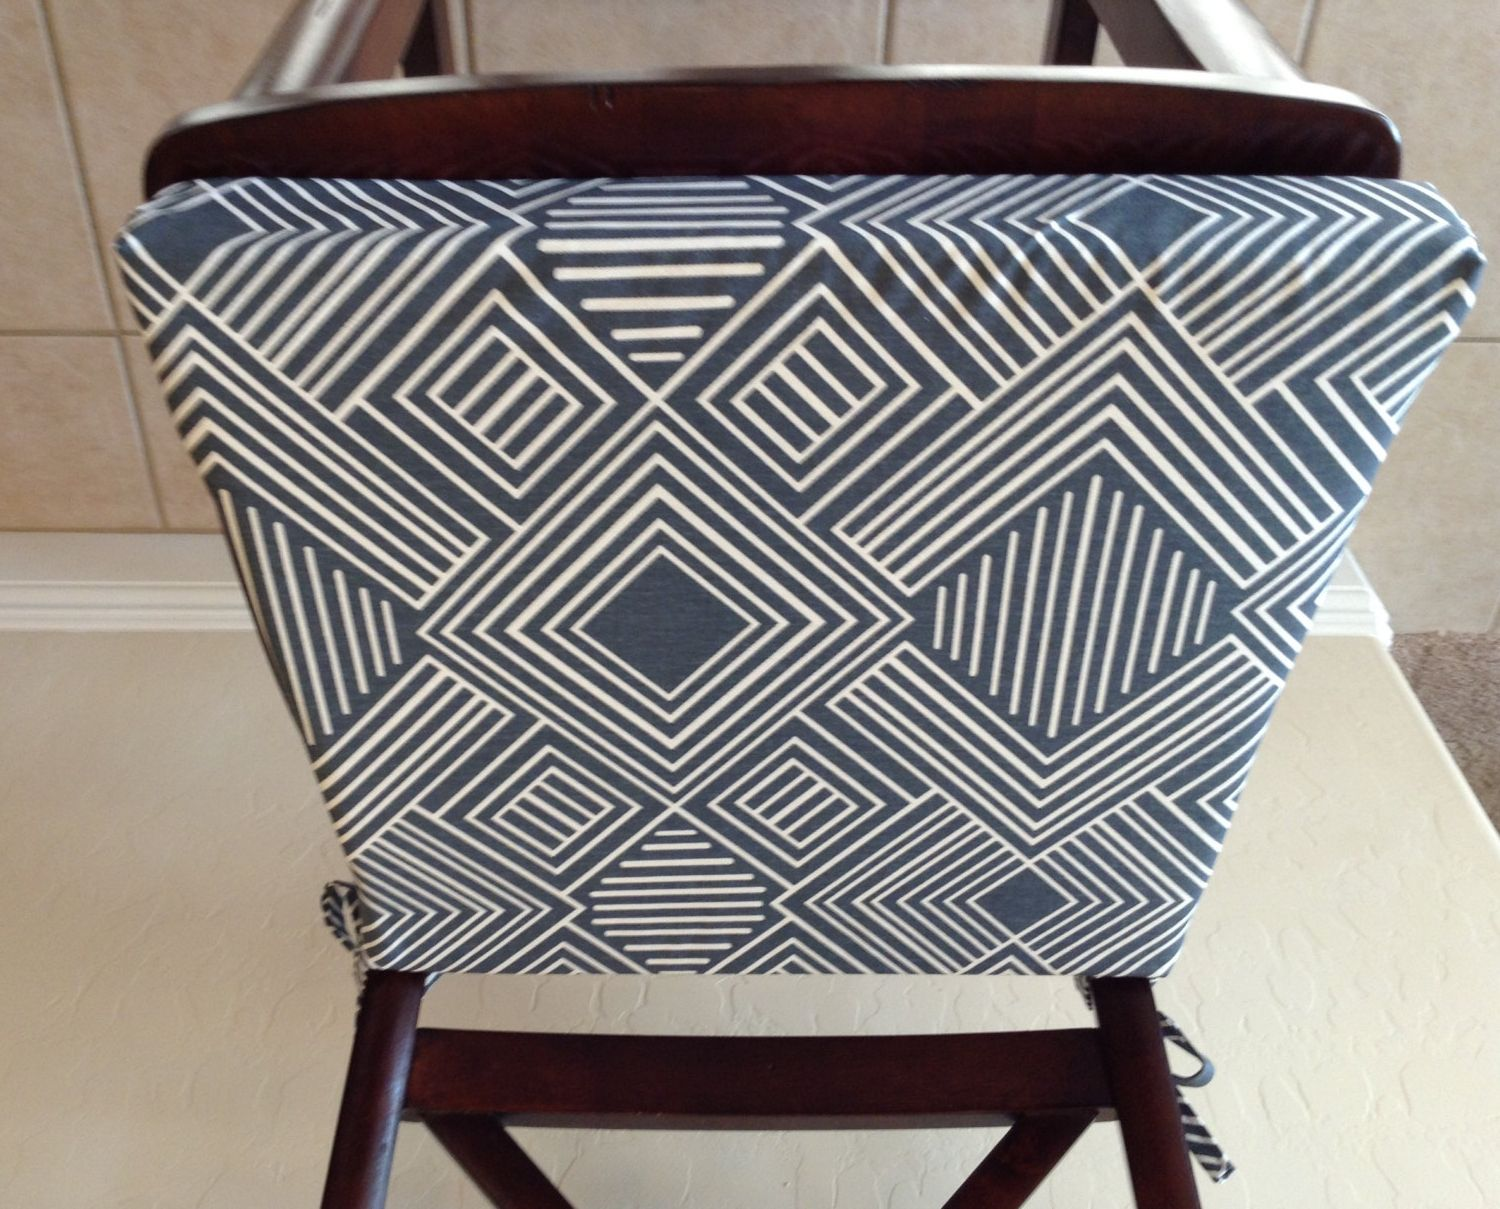 Cushions chair pads and more - Geometric Print Seat Cushion Cover Kitchen Chair Pad Gunmetal Blue Gray On Cream